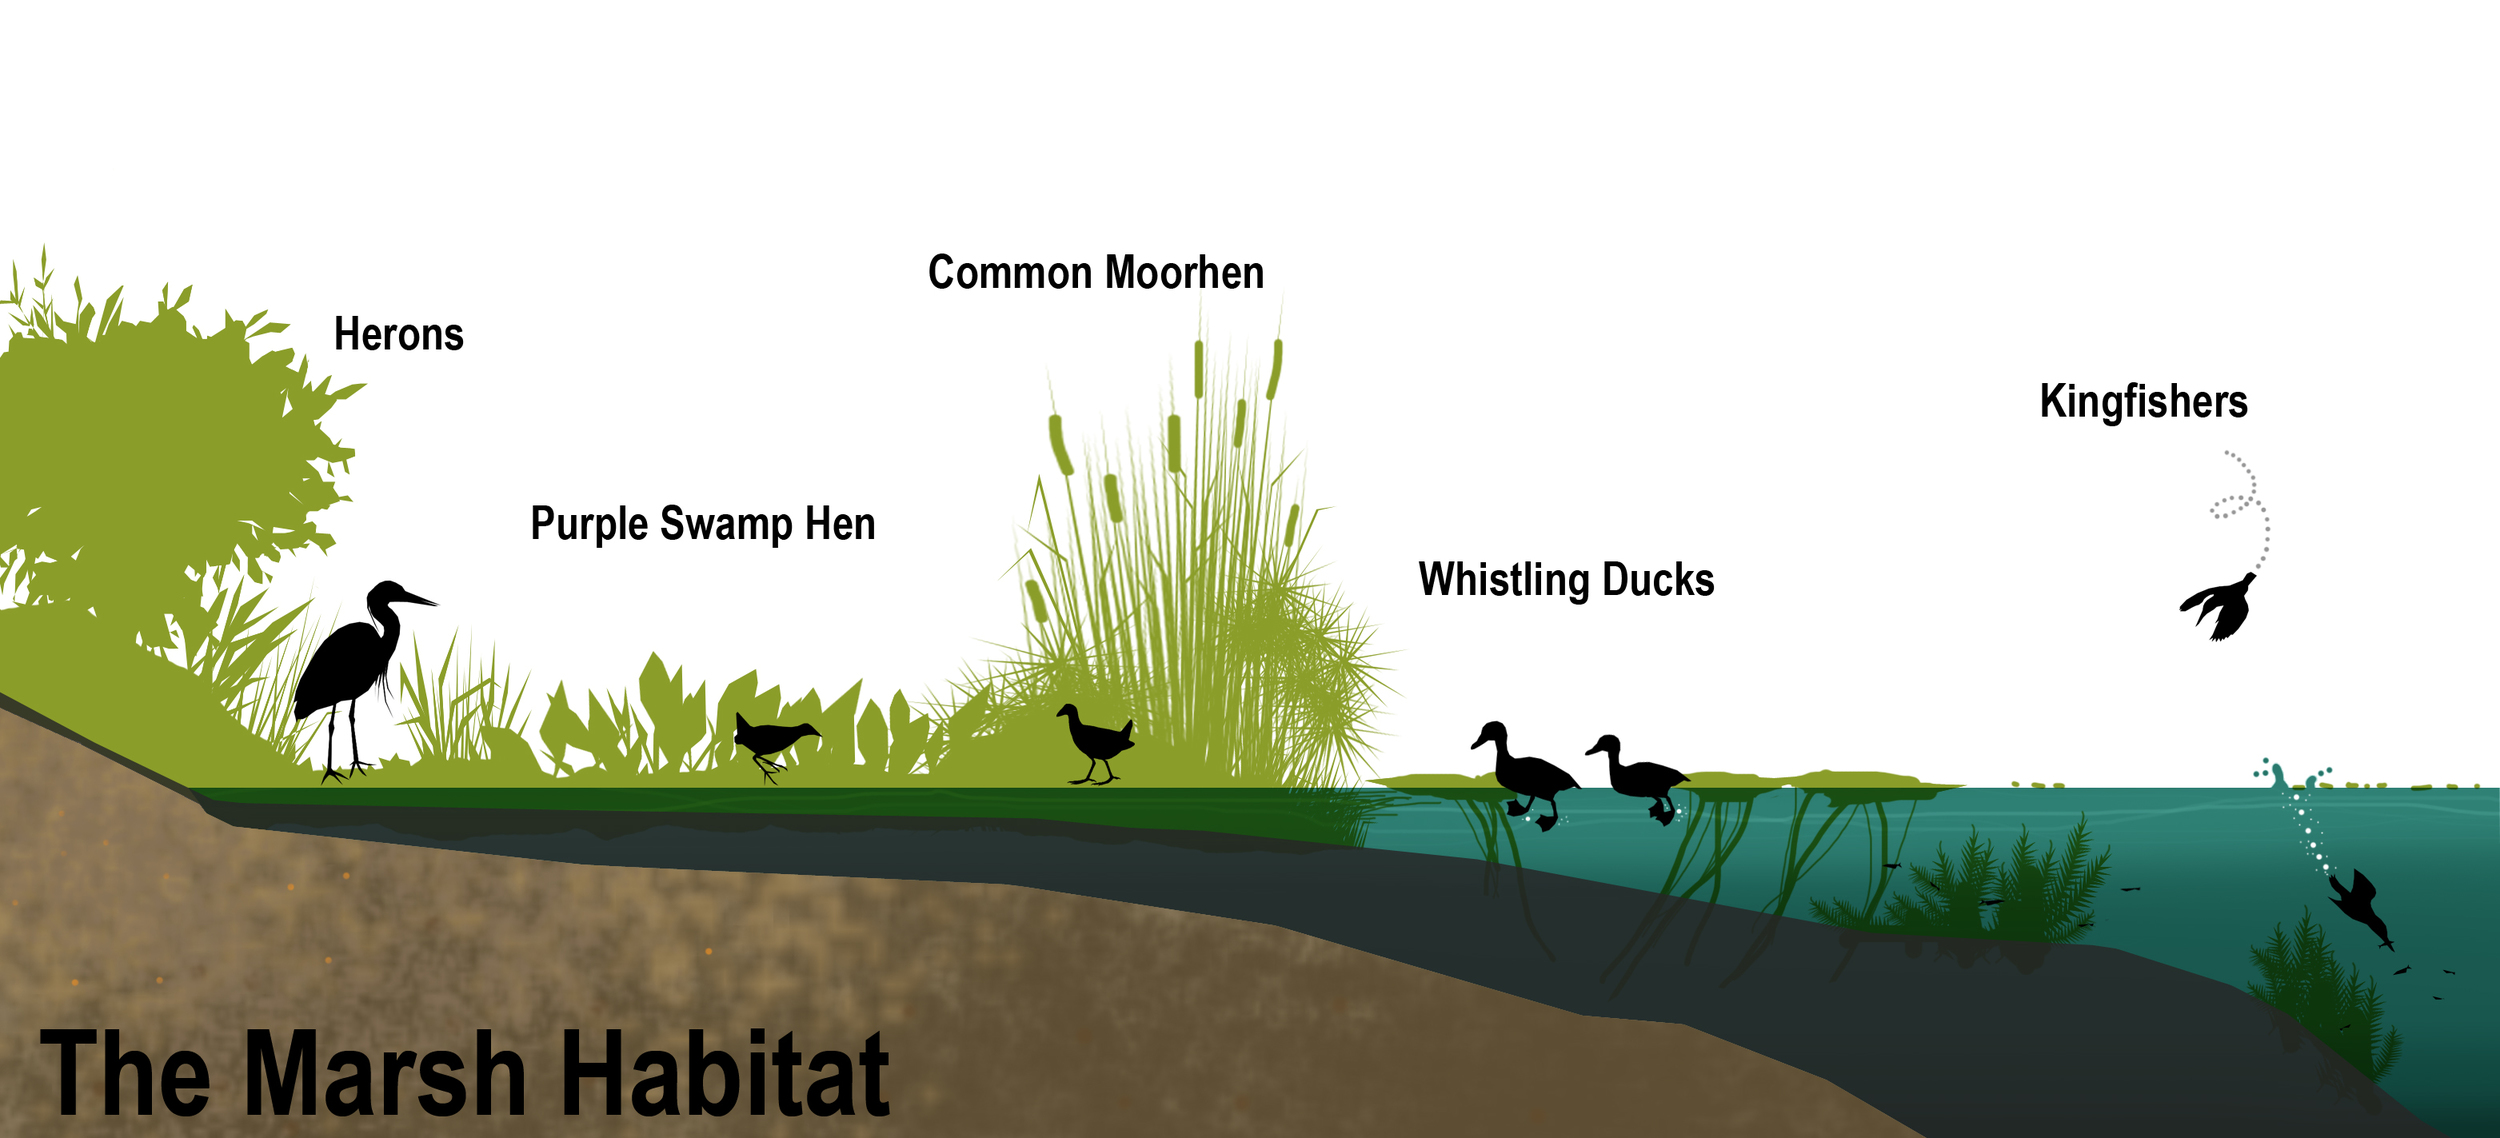 Graphic indicating some of the bird species of the marsh